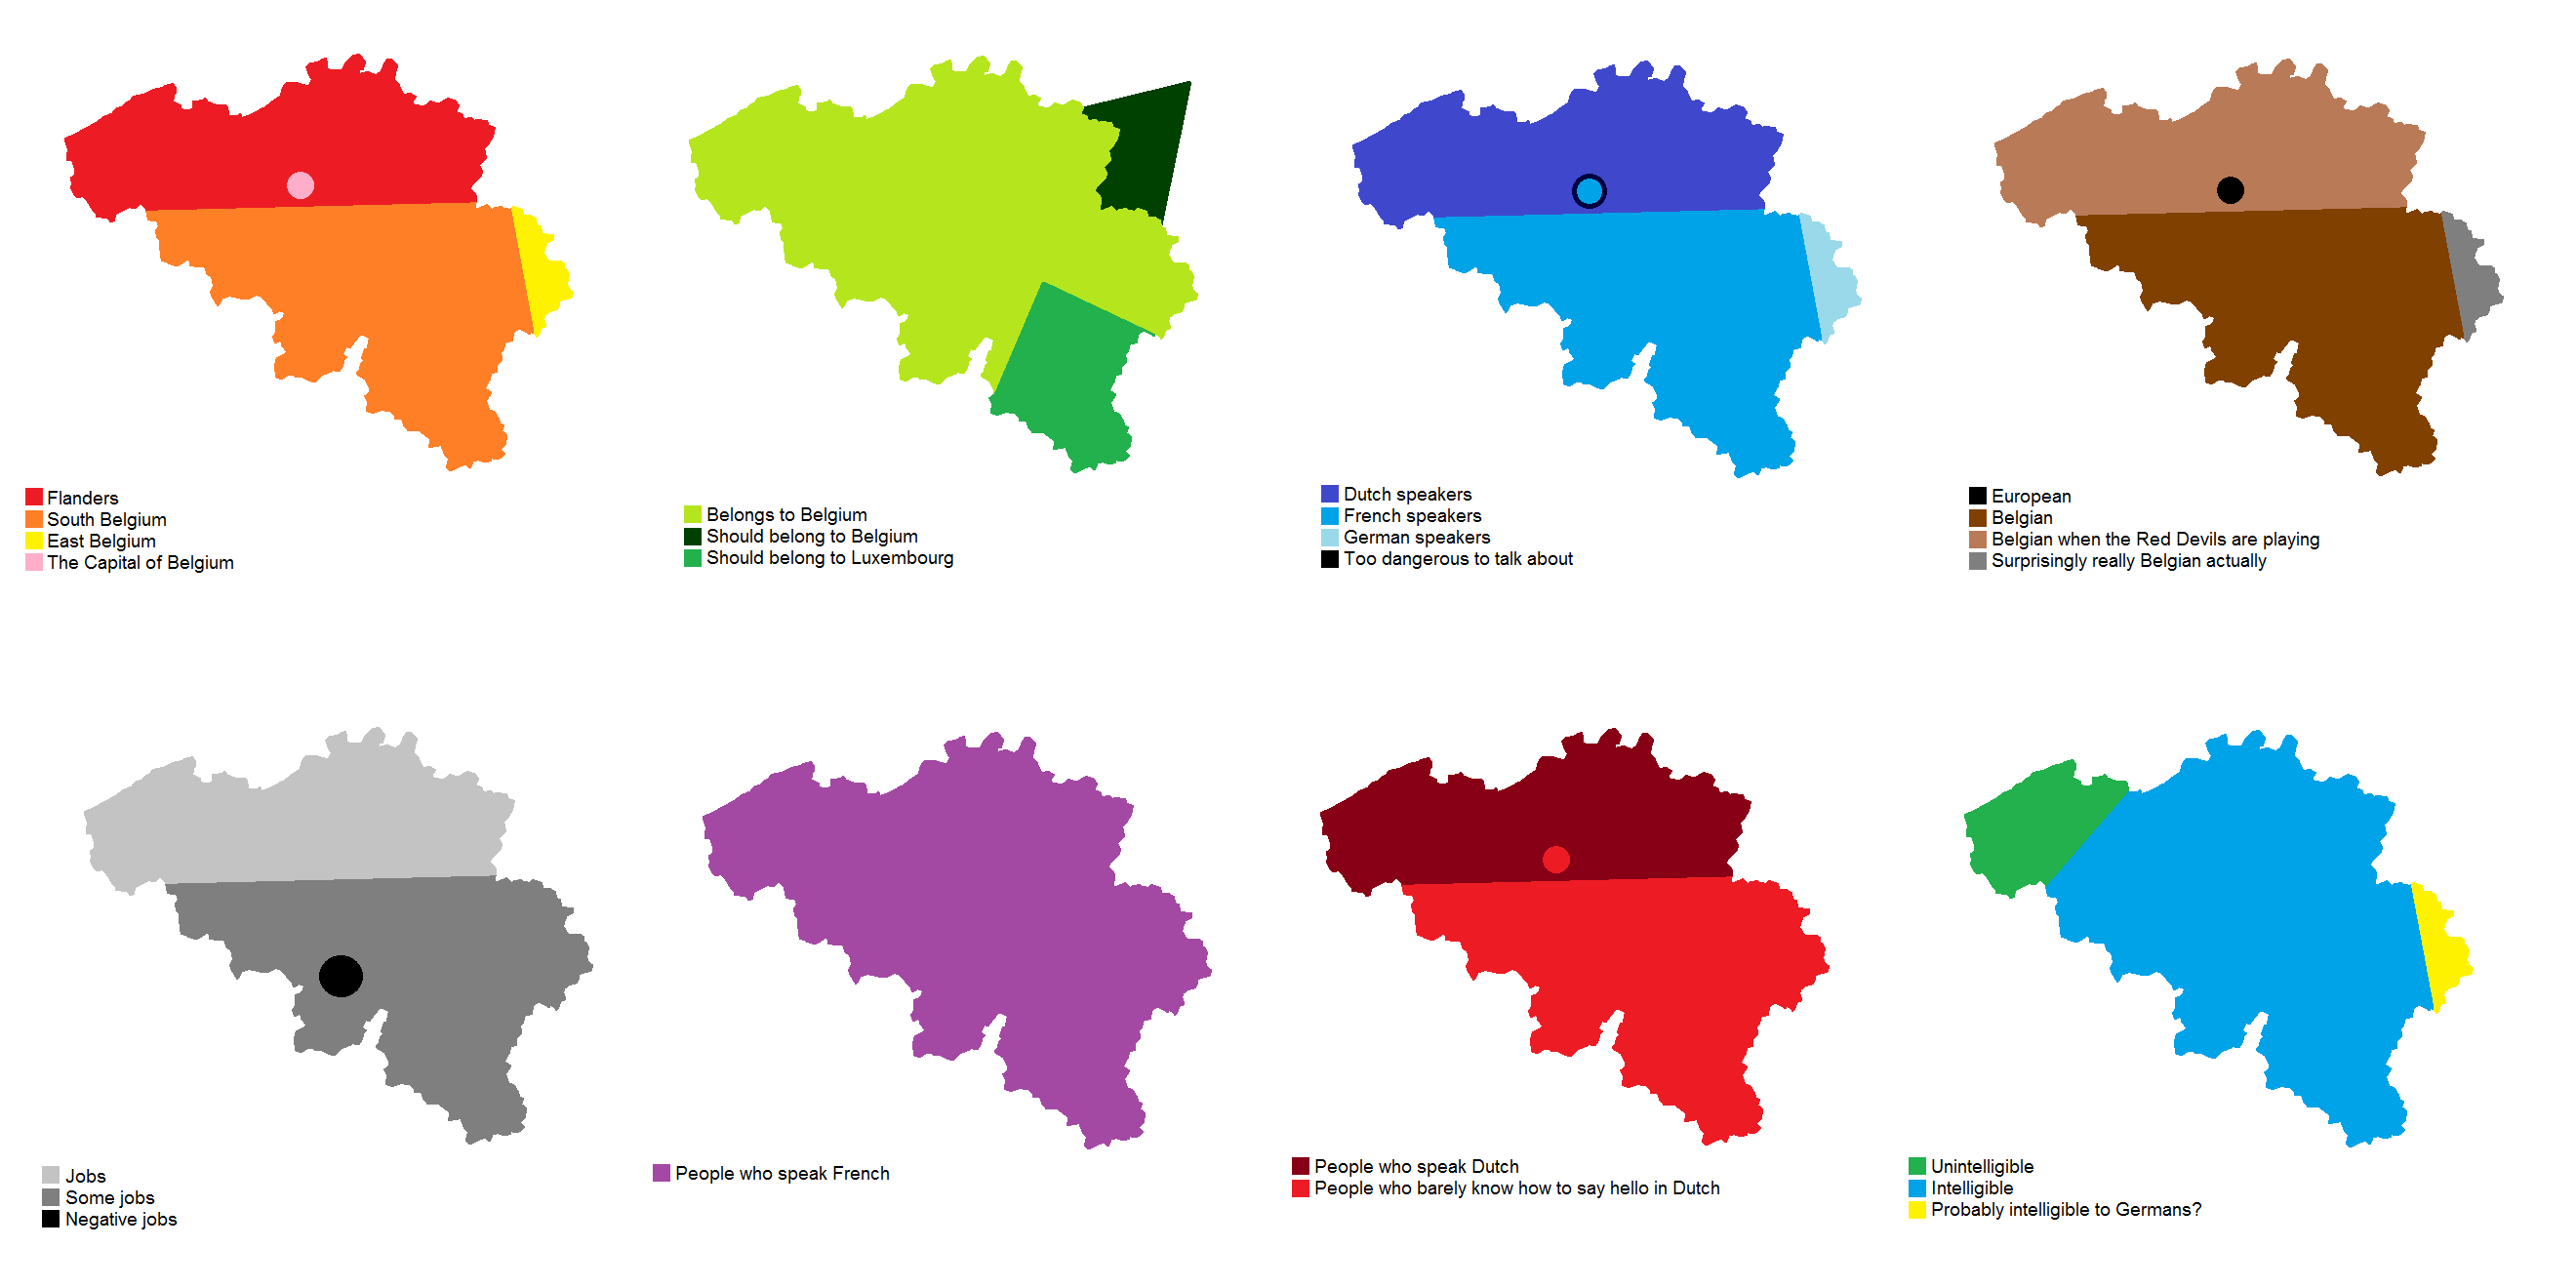 8 ways to divide Belgium | Map, Historical maps, Belgium